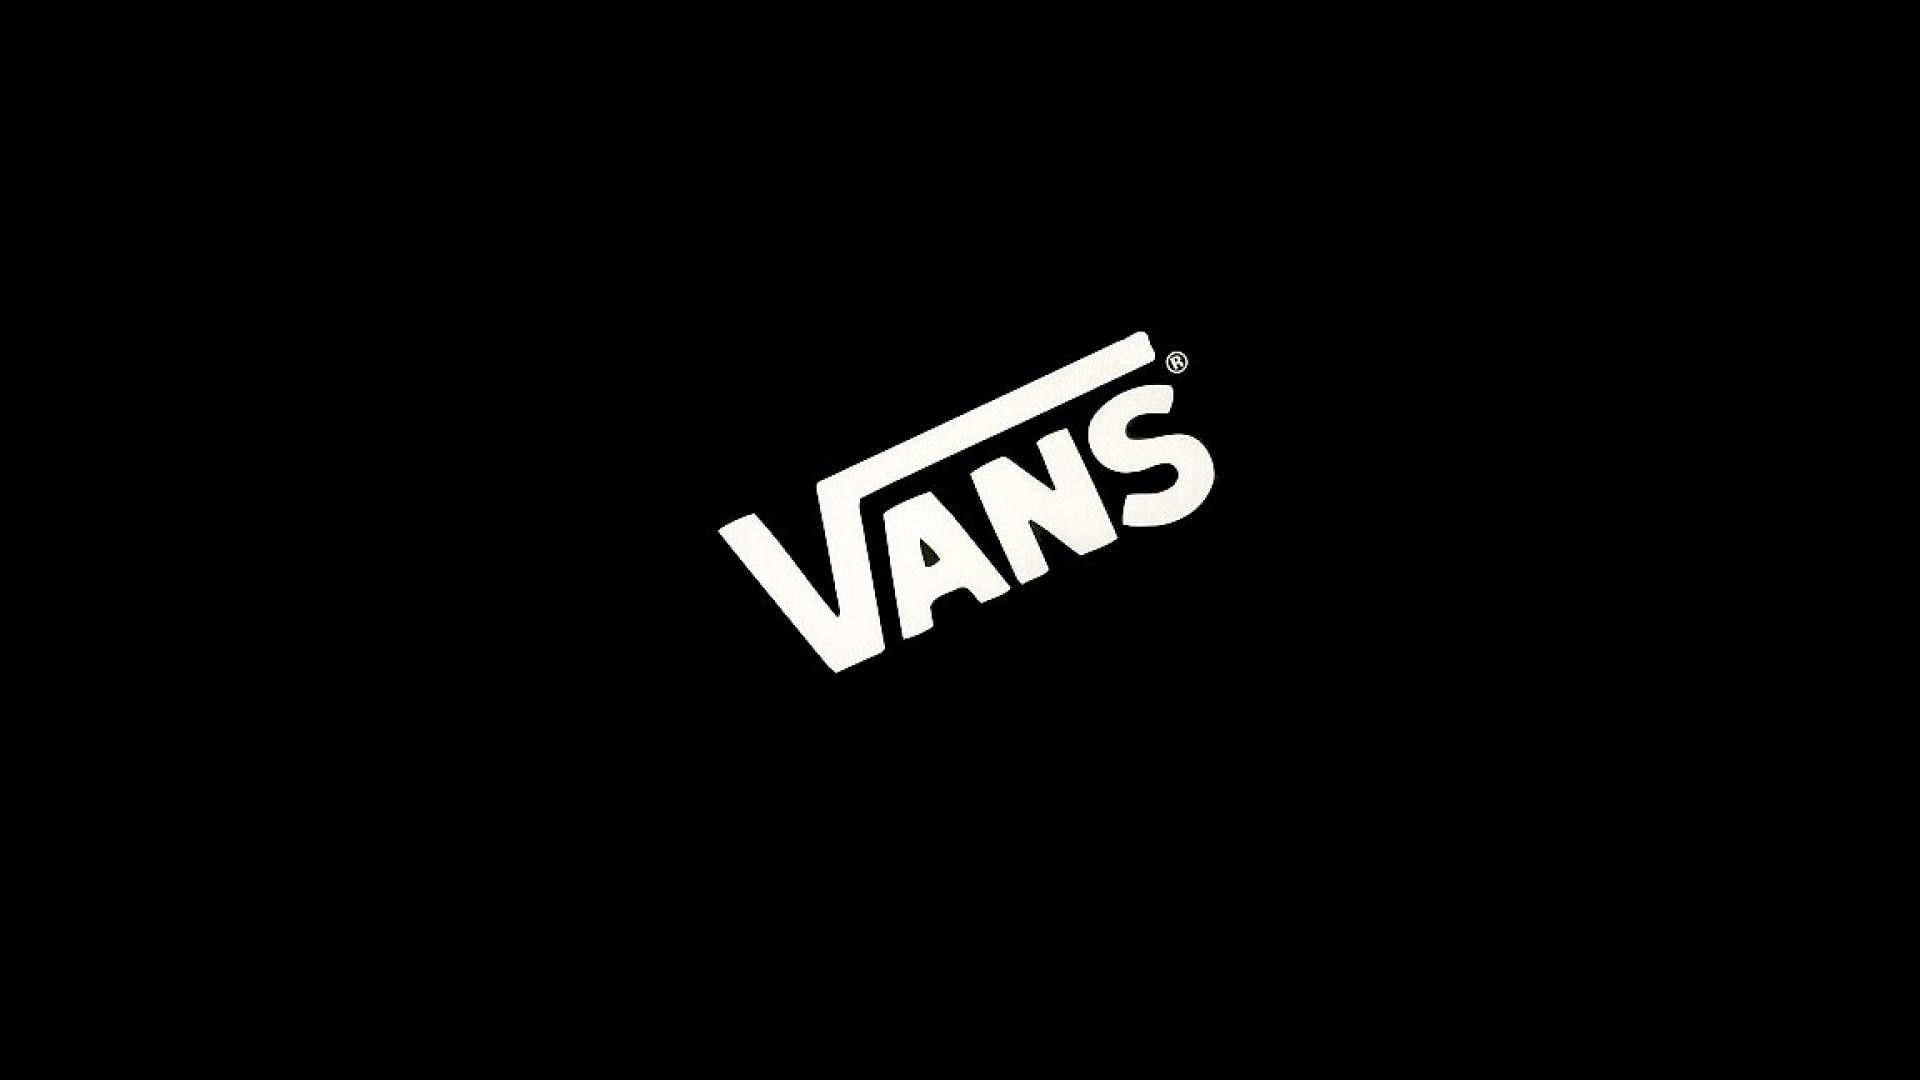 59 Vans Wallpaper Iphone Hd